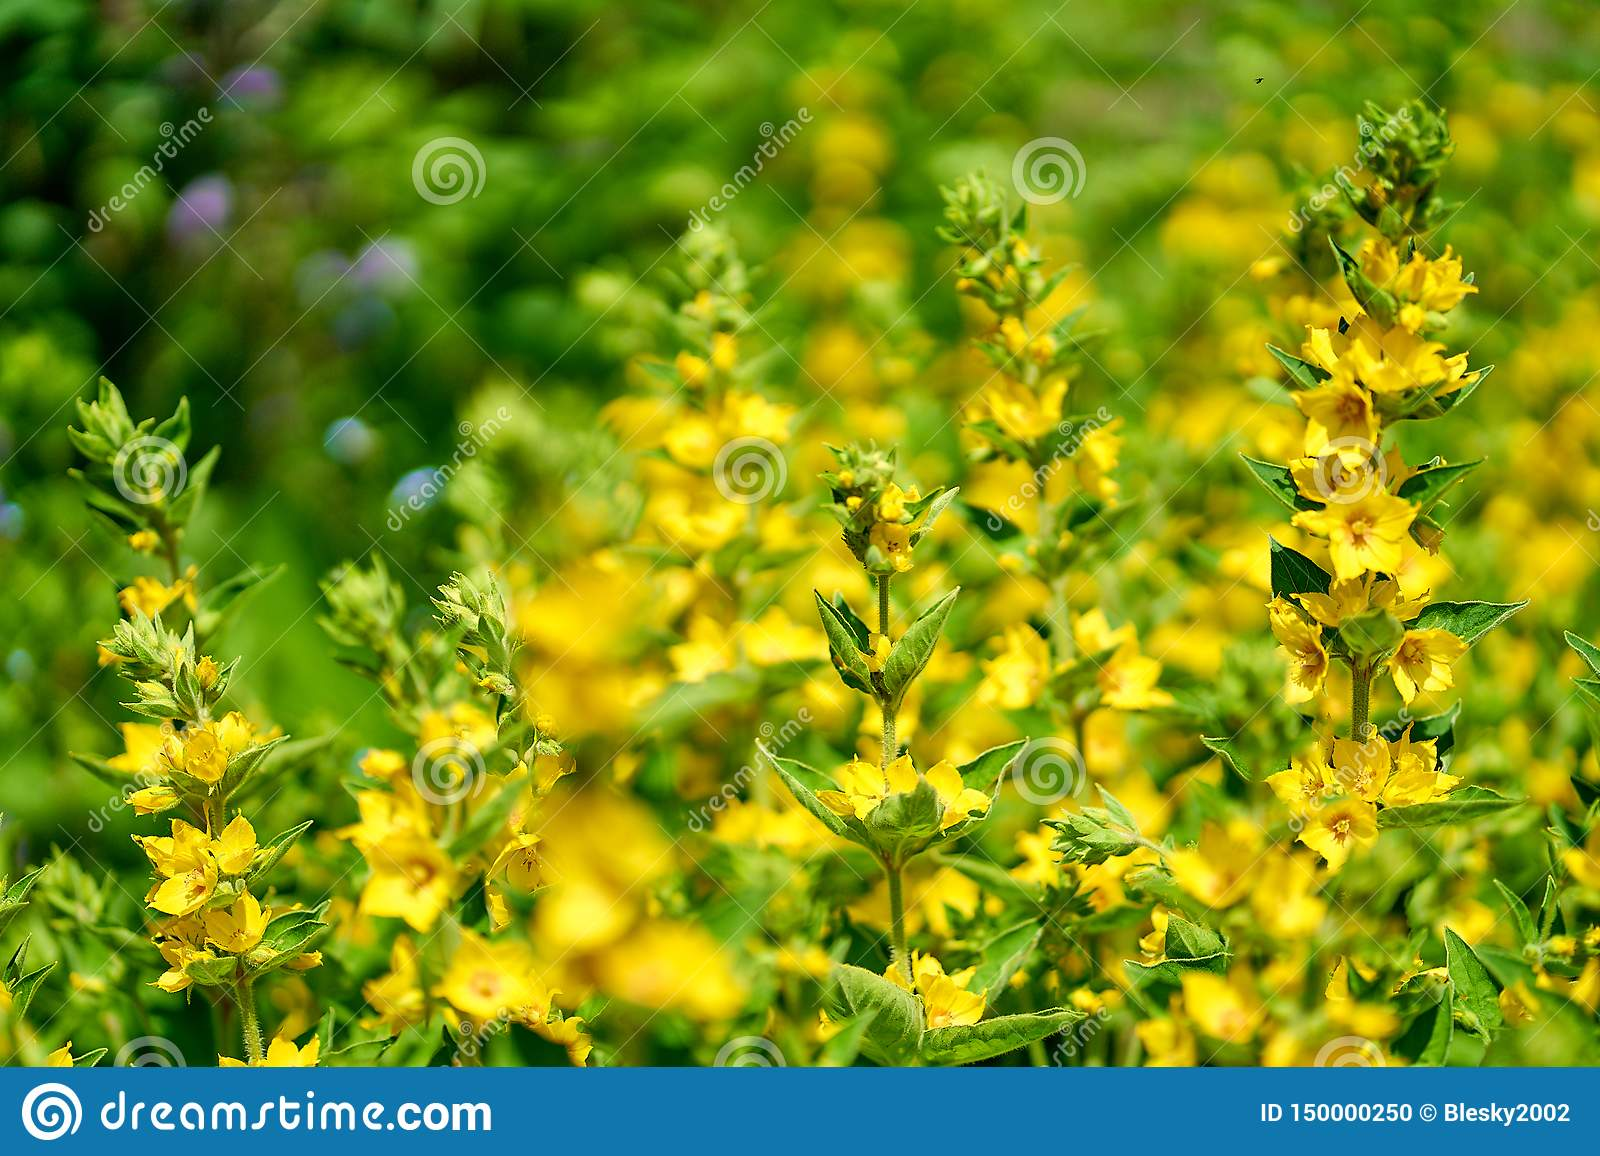 Yellow flowers in blossom, close up